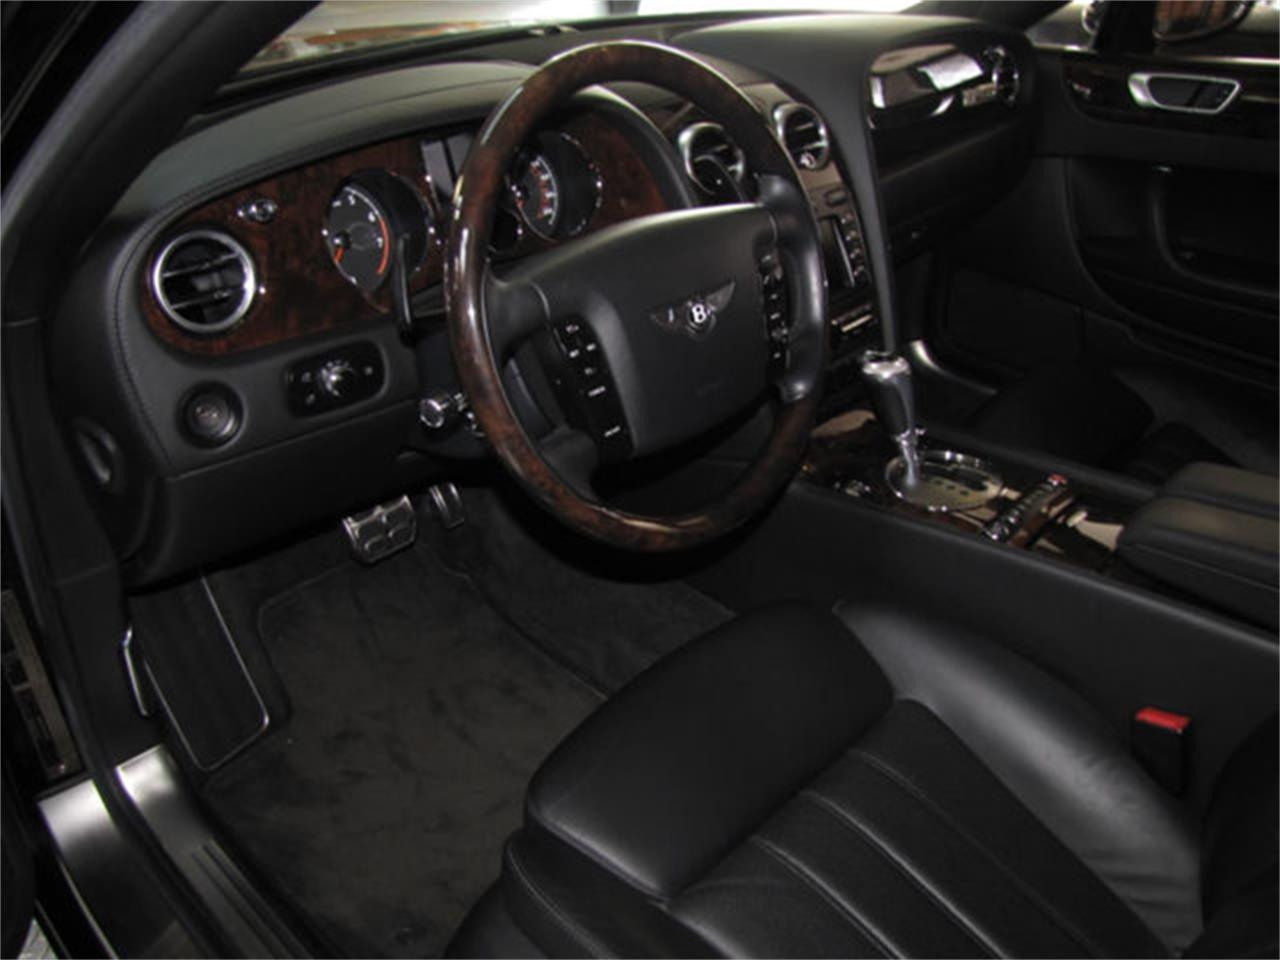 2006 Bentley Continental Flying Spur for sale in Hollywood, CA – photo 12